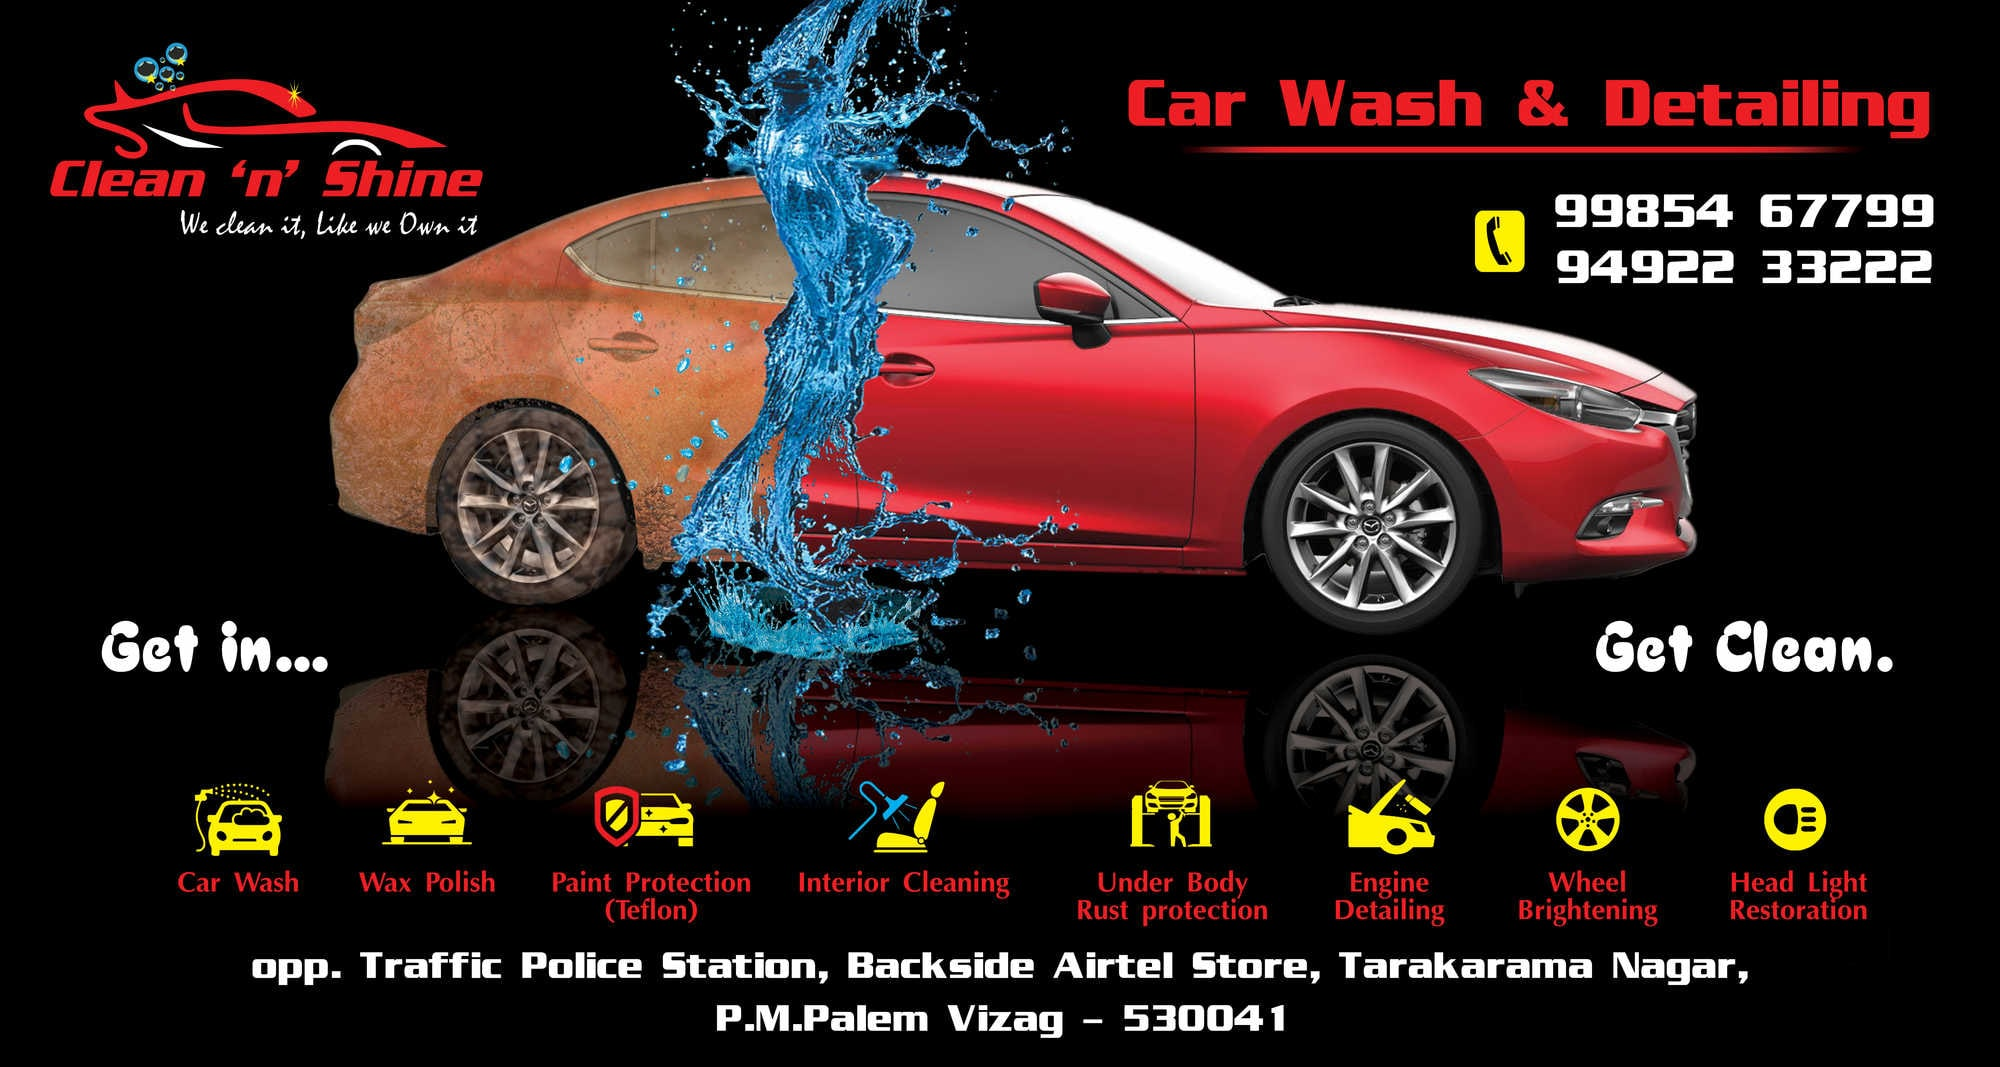 Car Detailing Services Near Me >> Top Car Washing Services In Visalakshi Nagar Best Car Cleaning